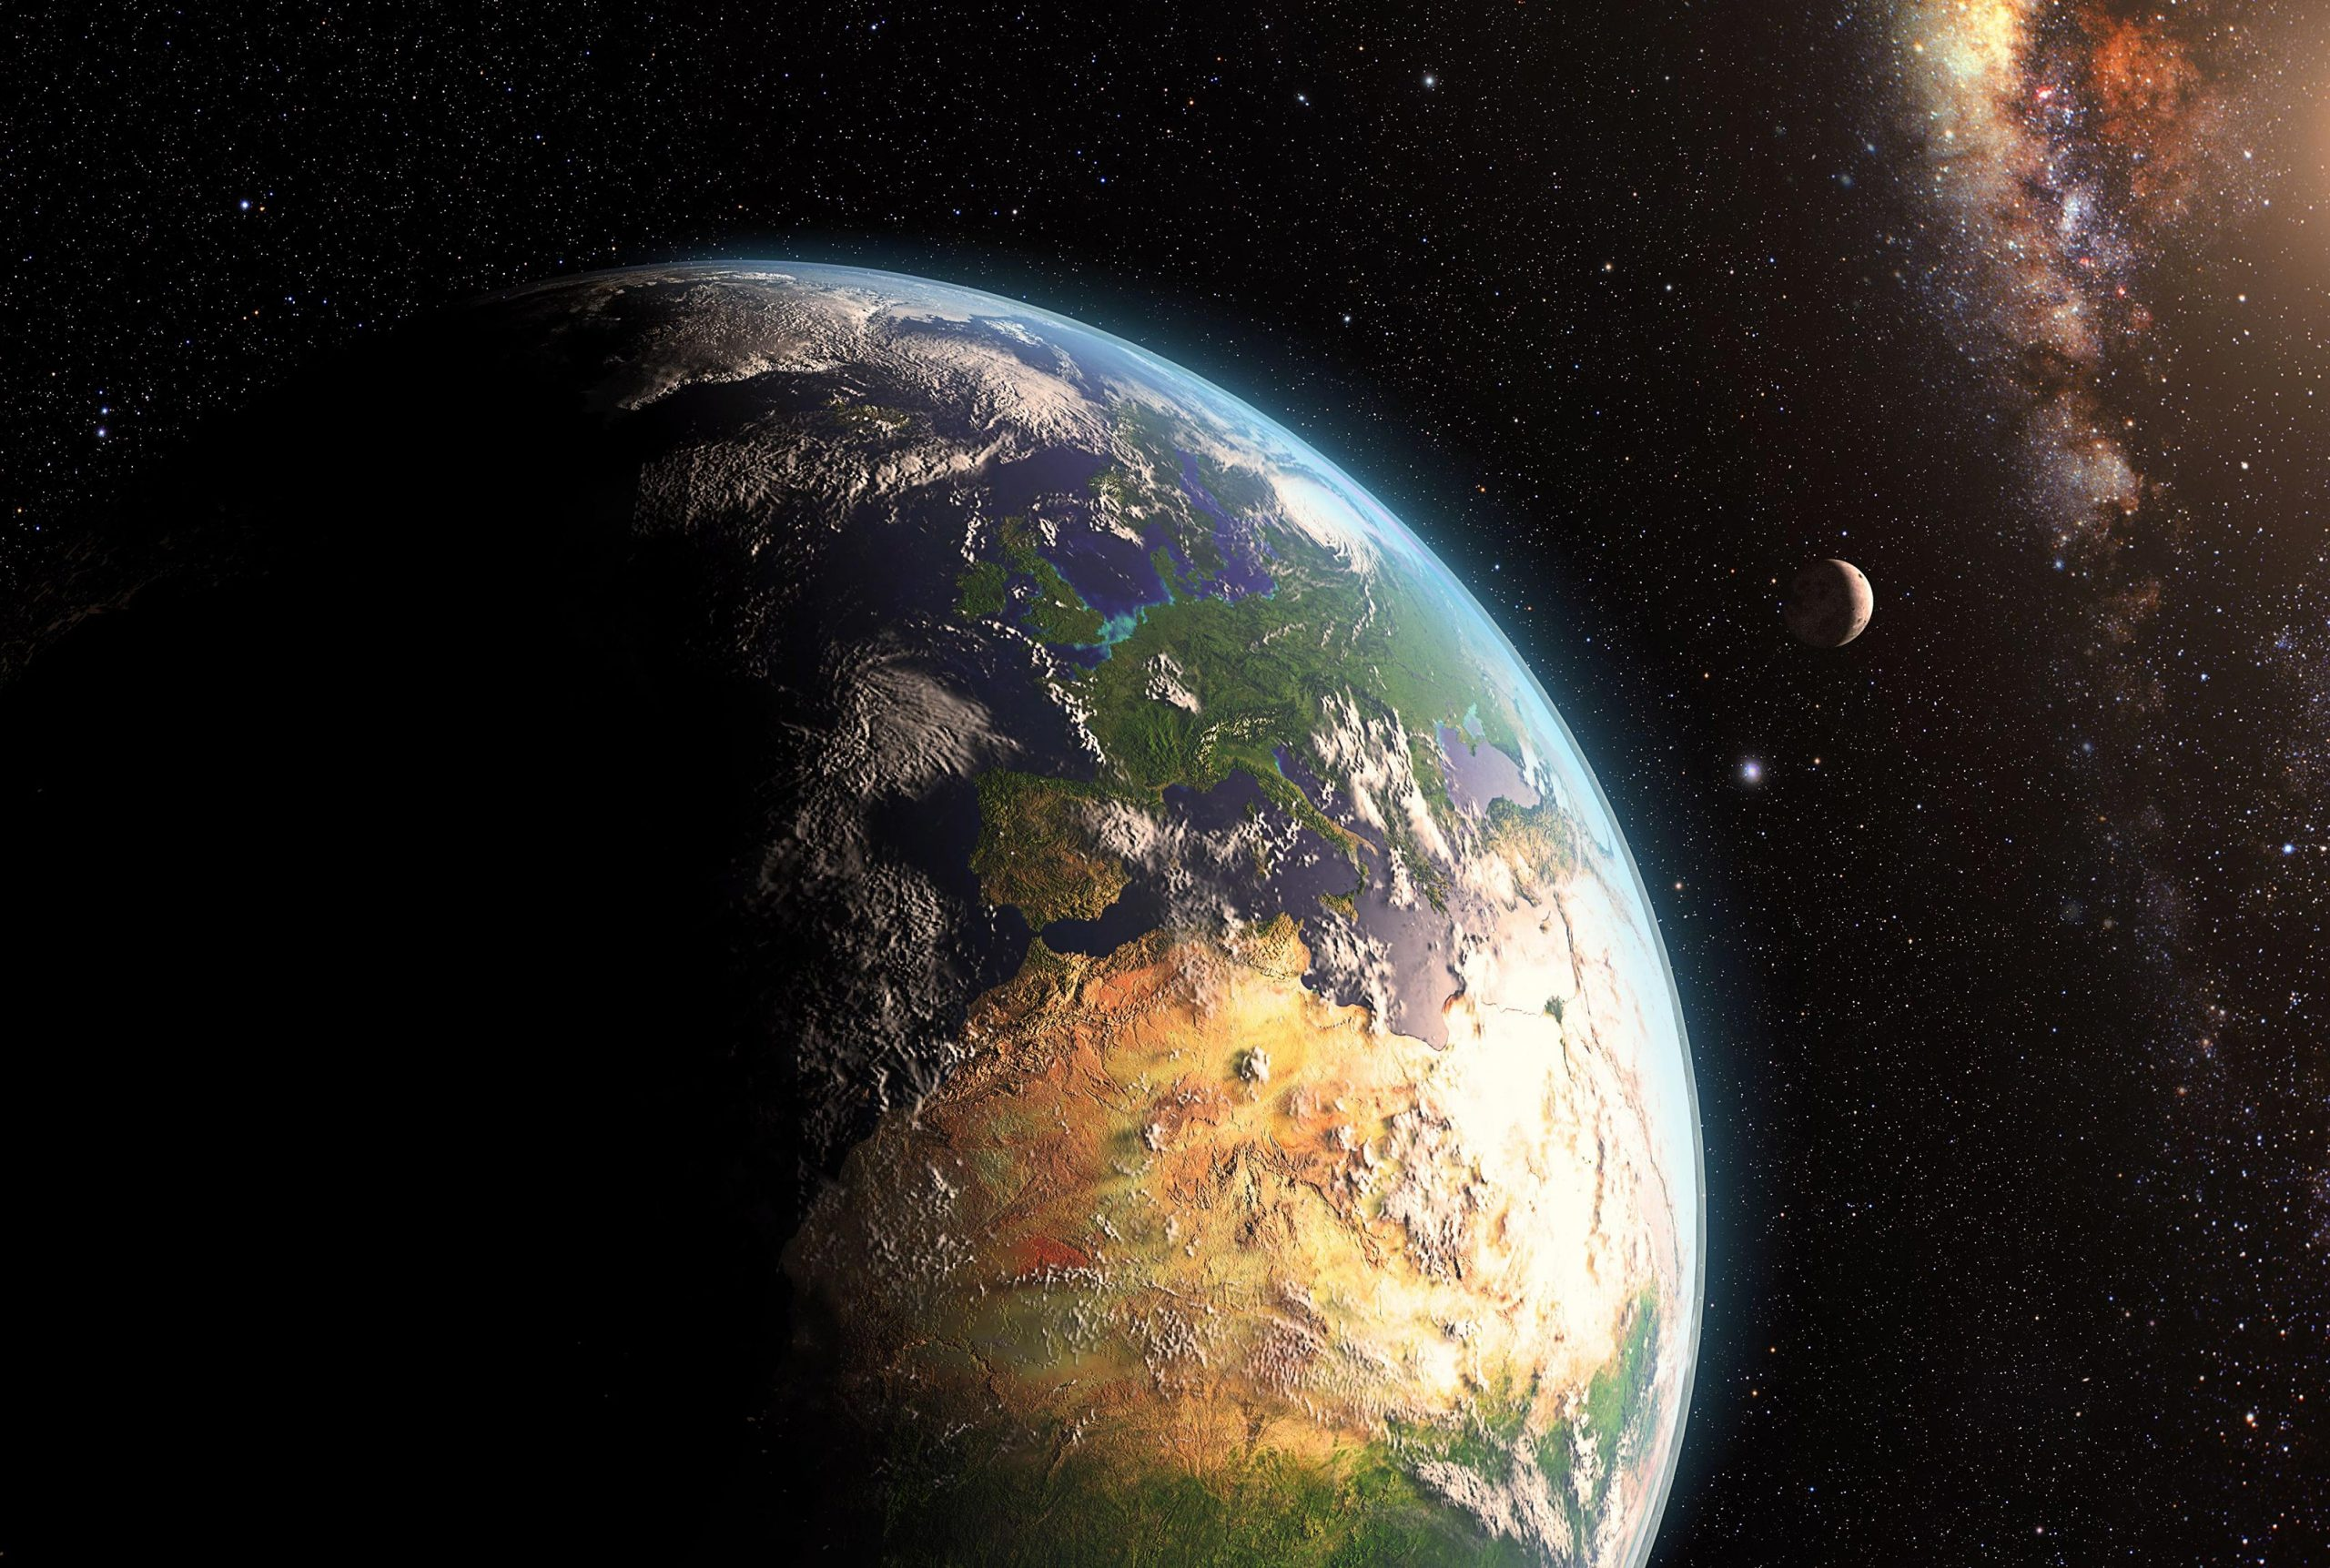 Oxygen Control Hypothesis – Did Earth's Early Rise in Oxygen Help Multicellular Life Evolve?